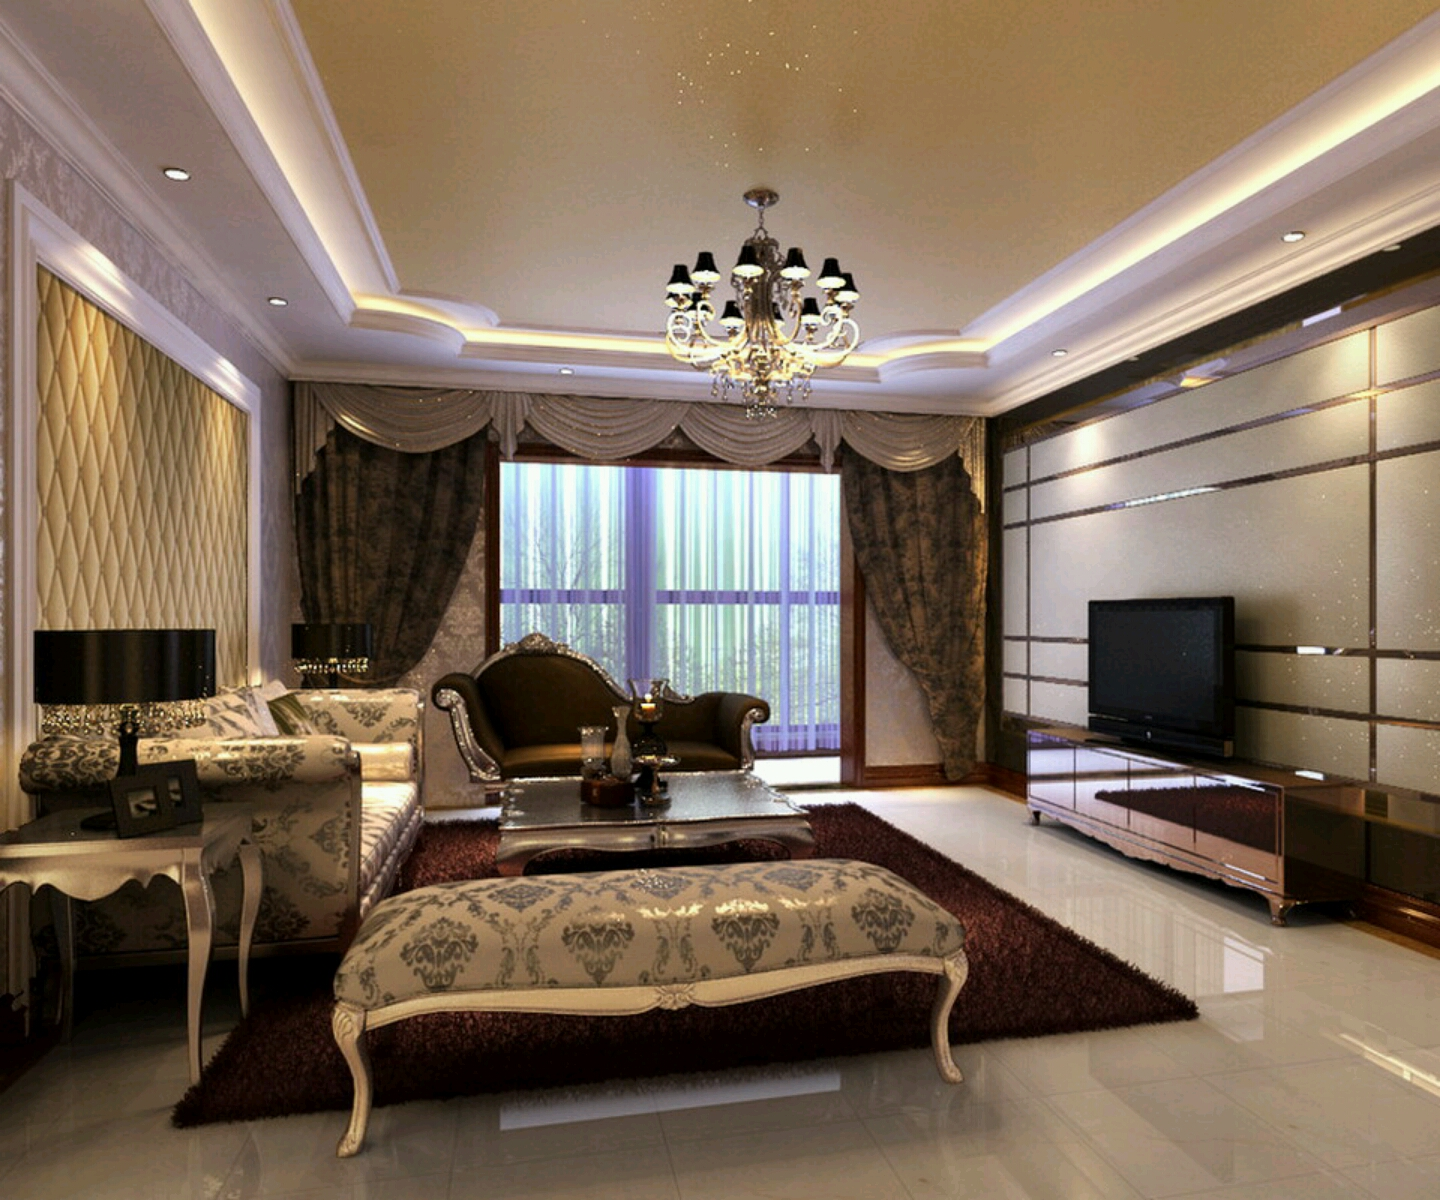 Find The Best Interior Home Decoration Israel - koroshouse